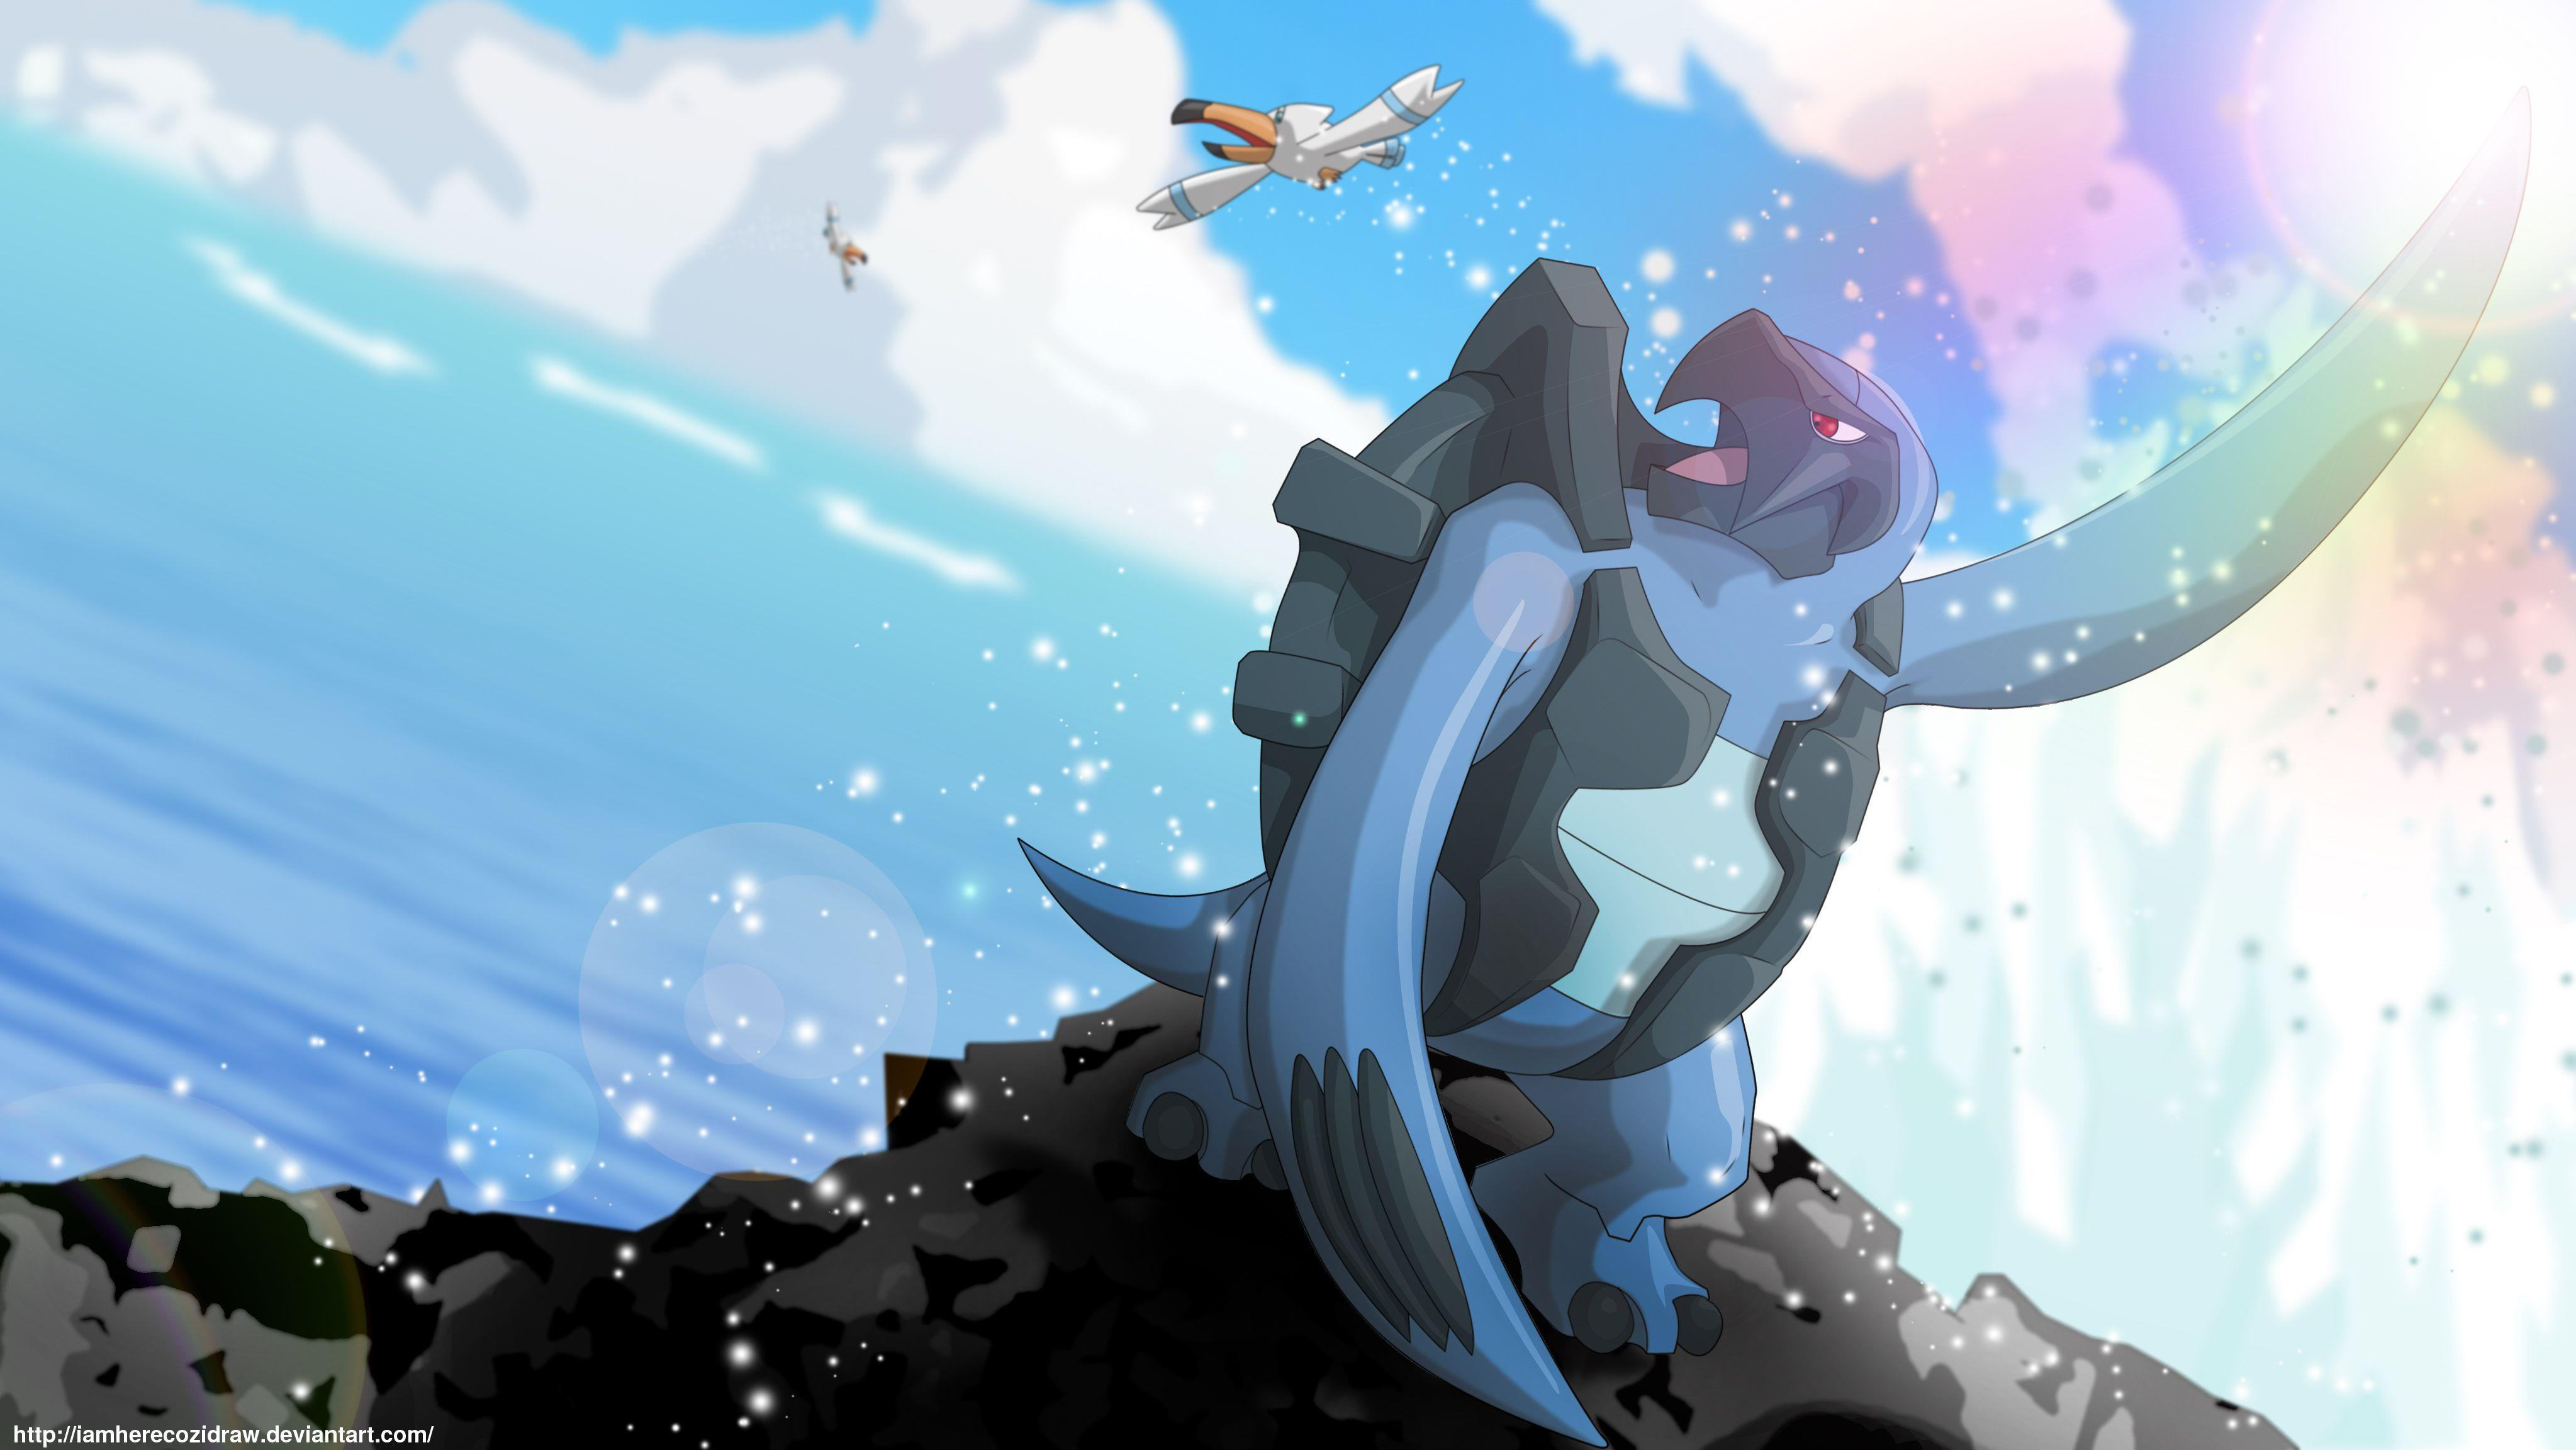 Carracosta | Gaming | Pinterest | Pokémon, Pokemon starters and Nintendo